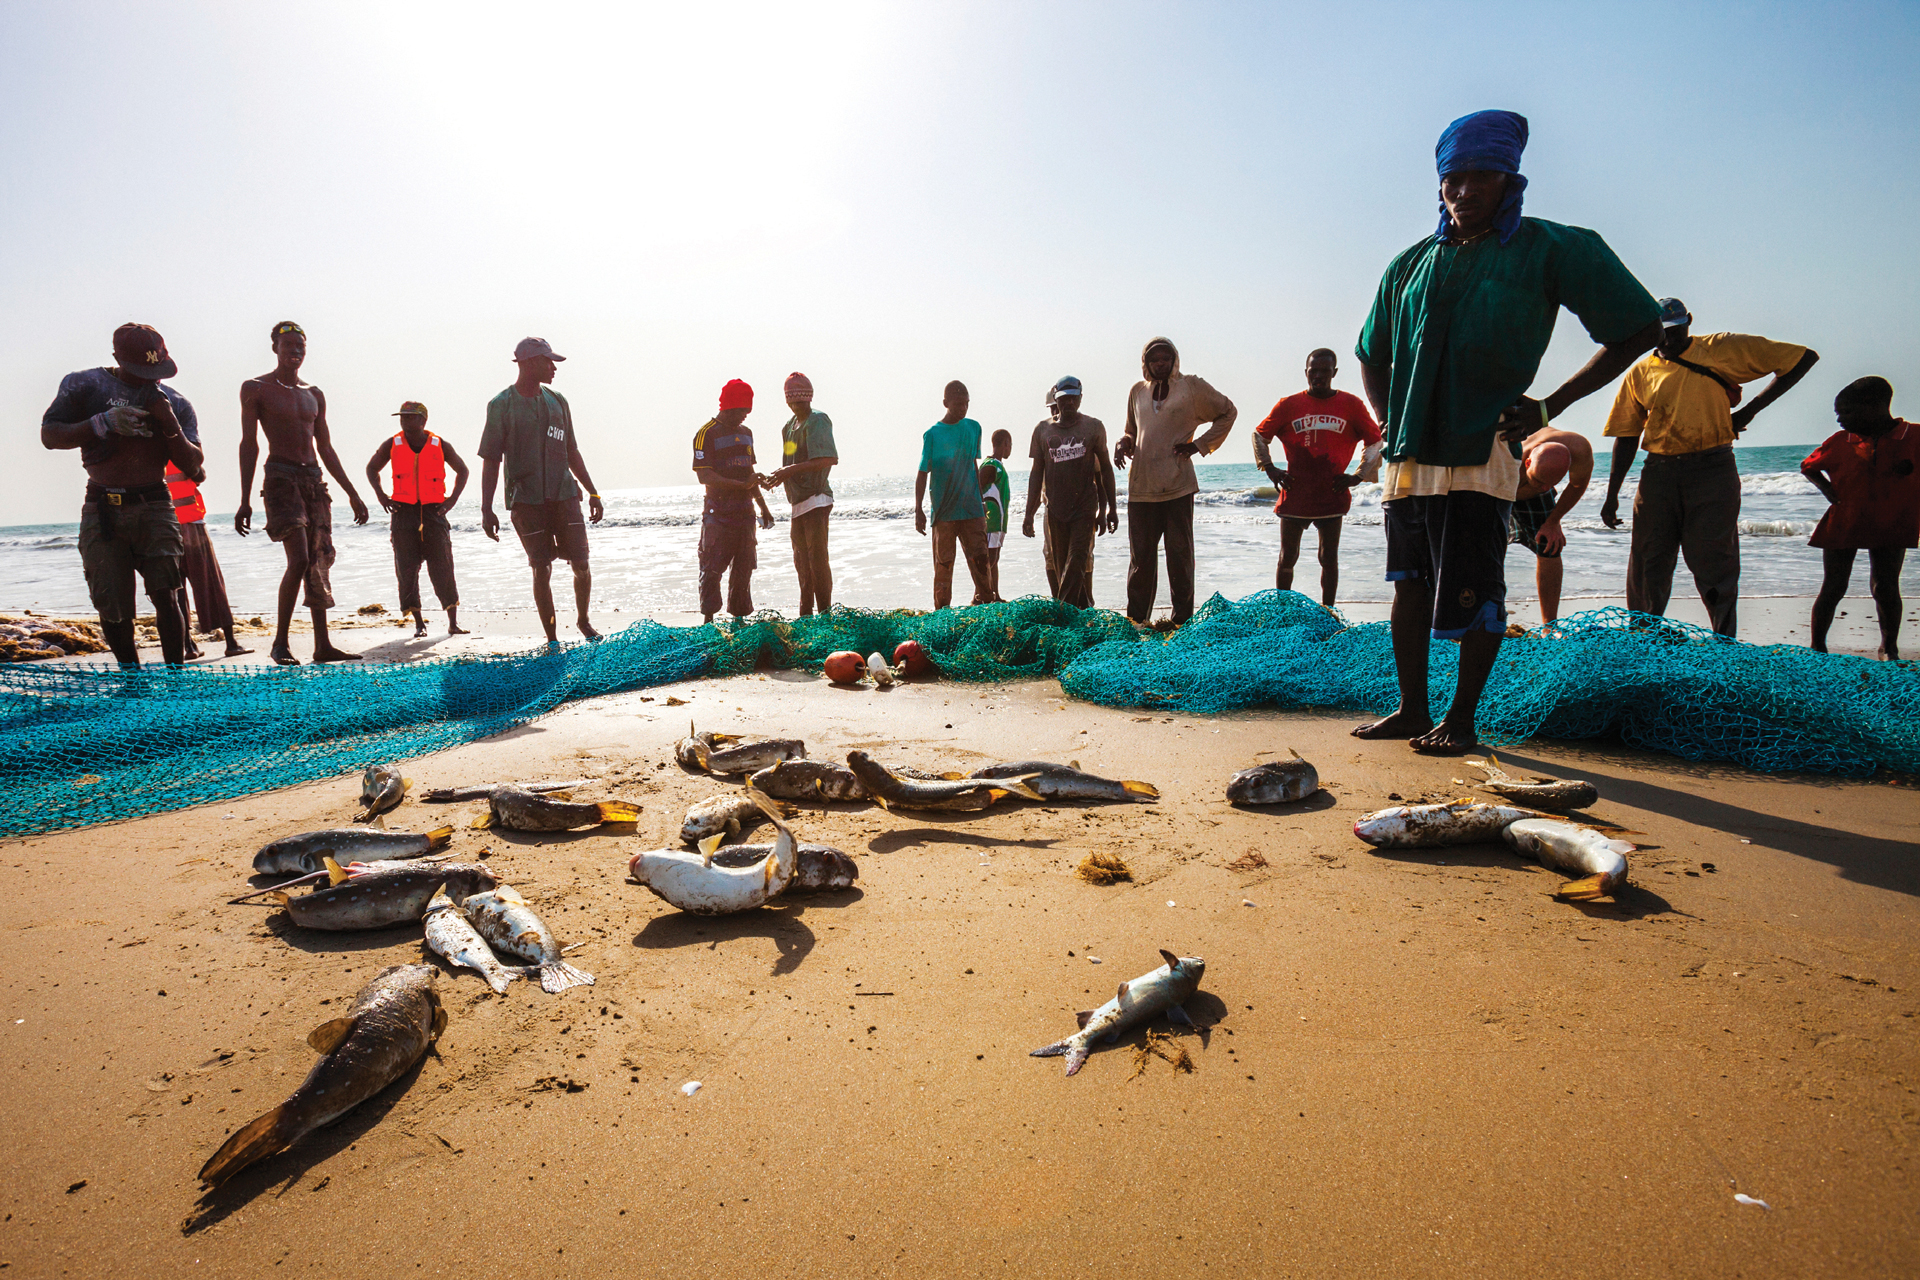 Fishermen and meagre catch on beach with nets, West Africa